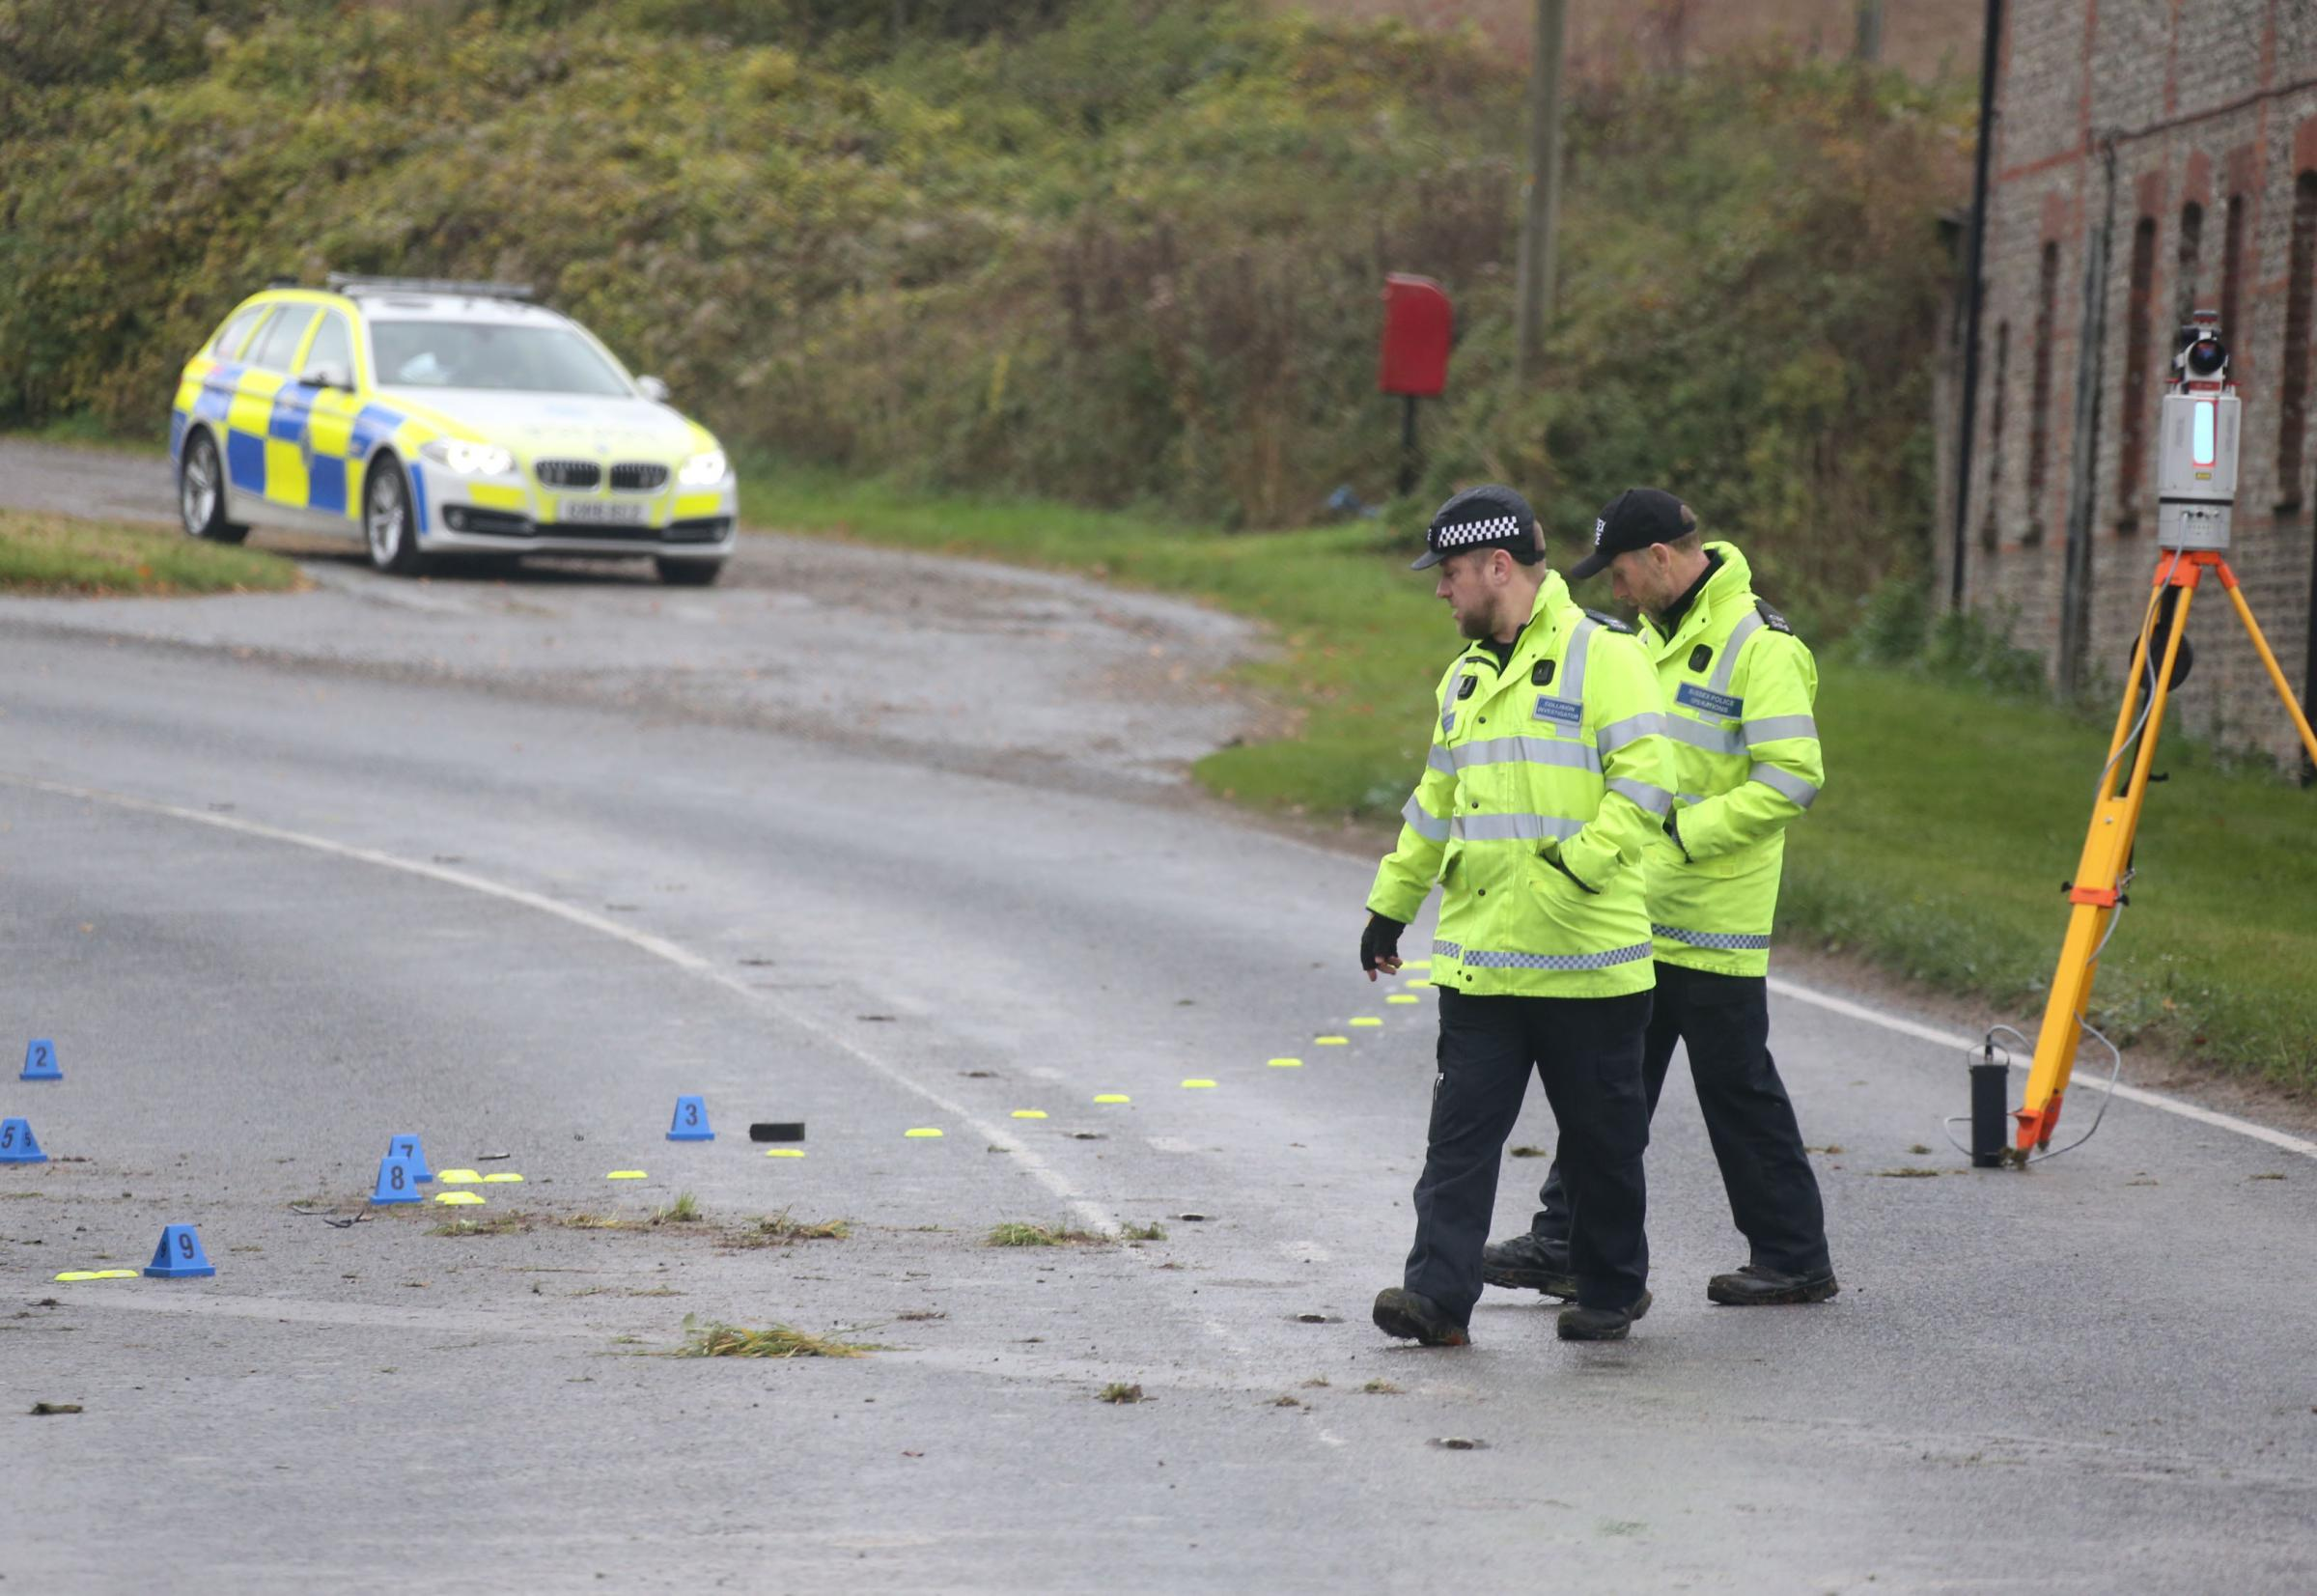 Young driver dies in crash near Chichester